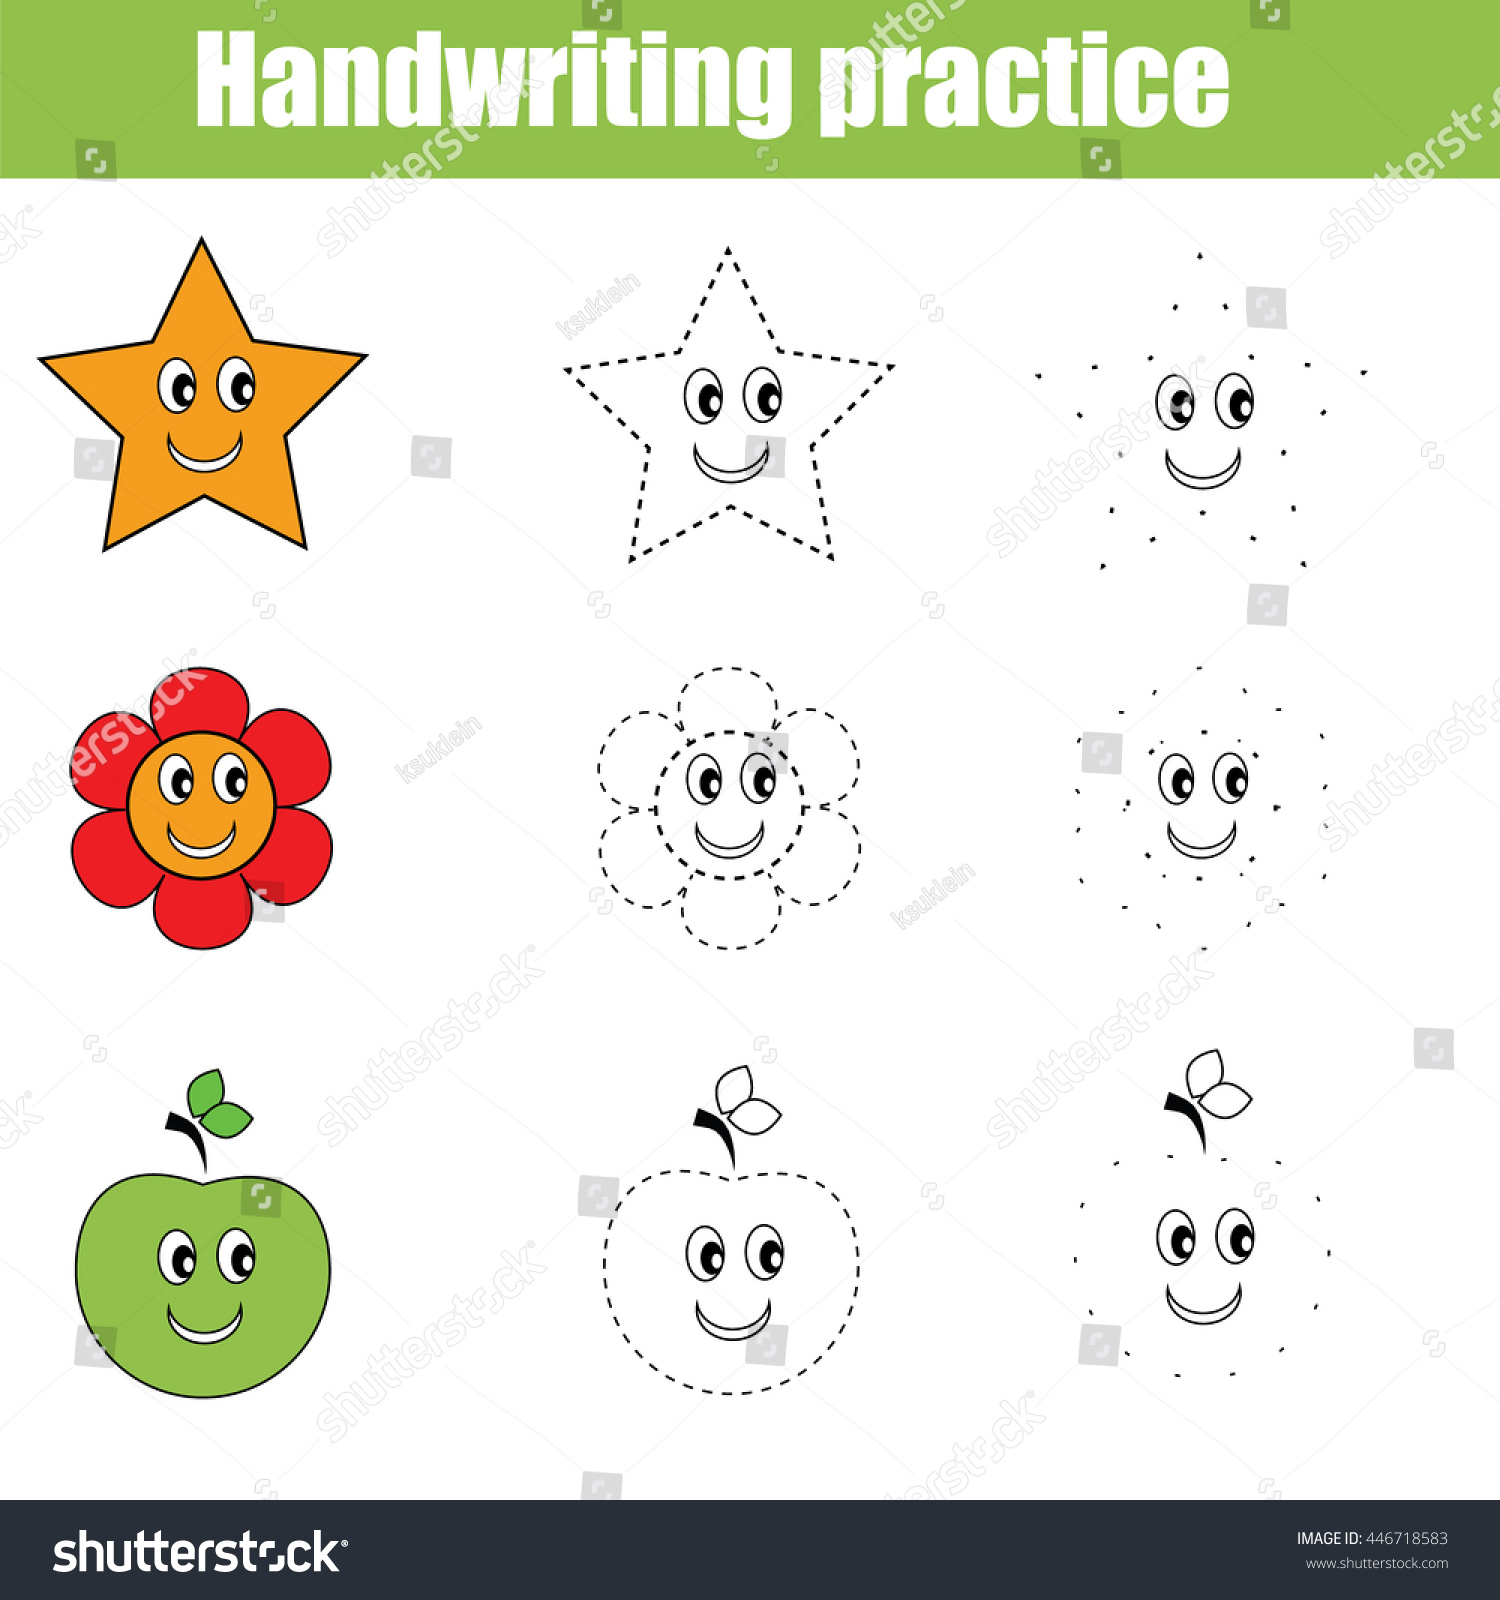 Worksheets Kindergarten Handwriting Worksheet Maker worksheet handwriting maker for kindergarten mikyu free printable dot to worksheets alphabet handwri